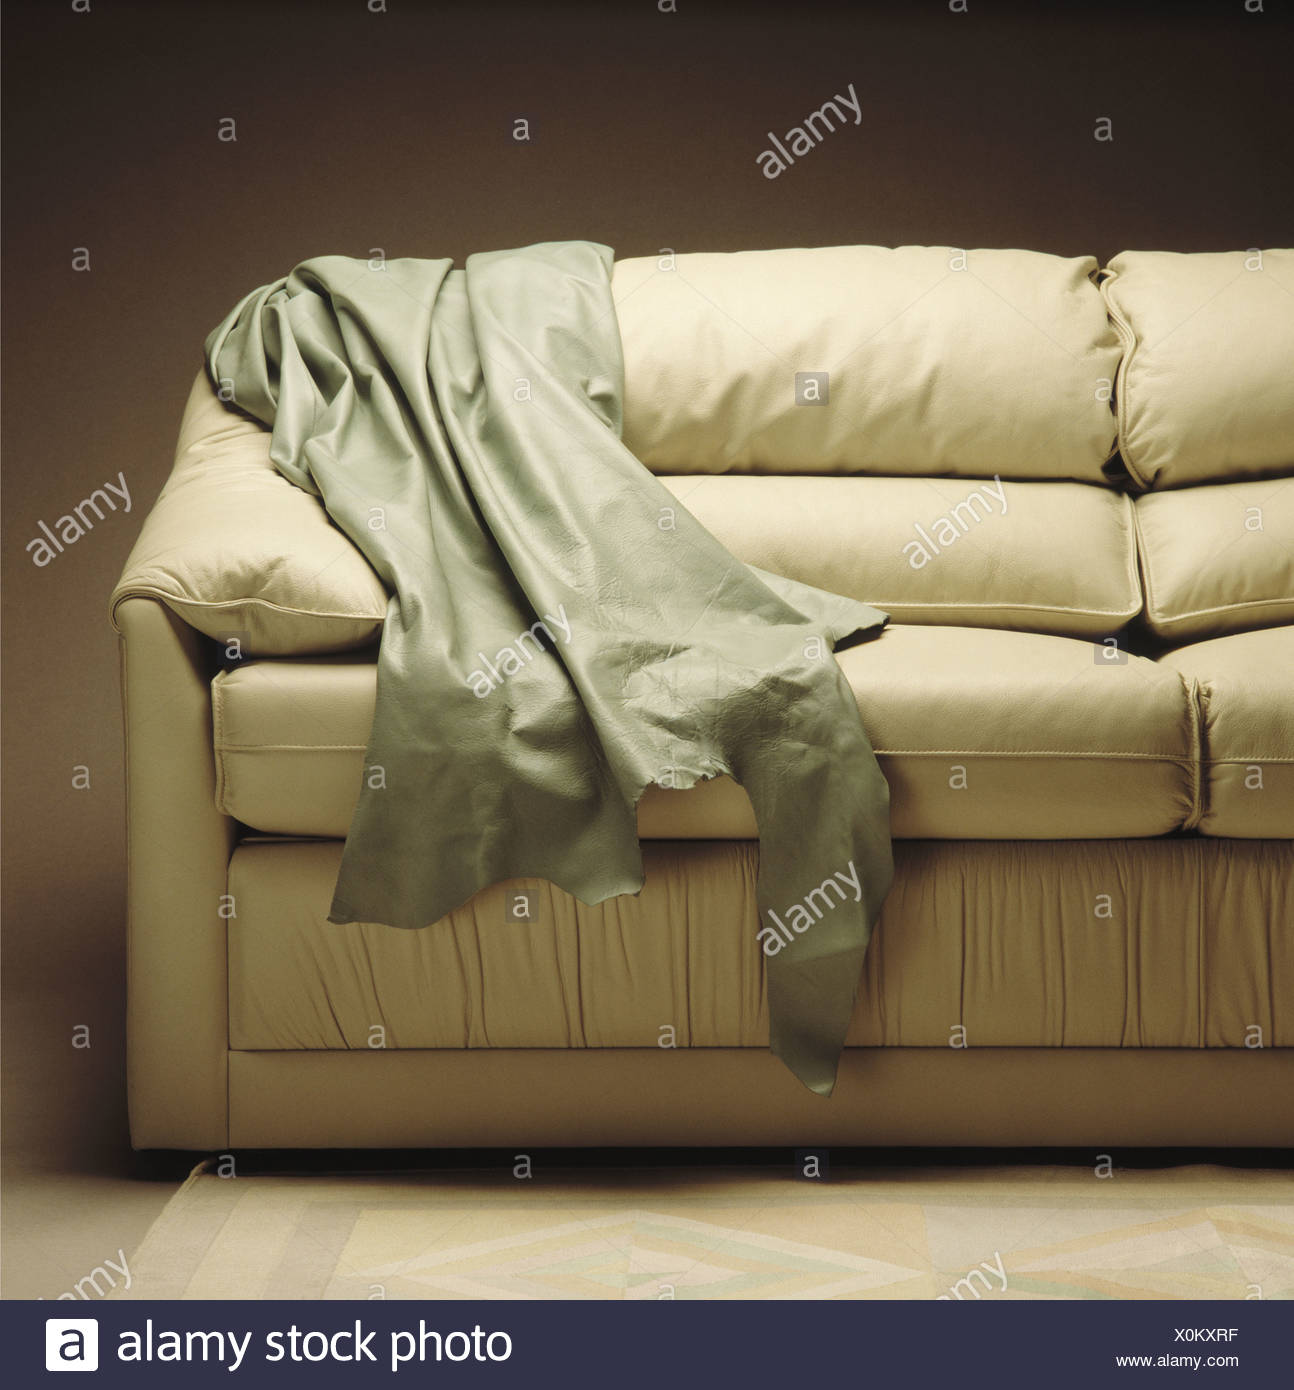 throws for cream leather sofa dimensions cm sofas settees stock photos and